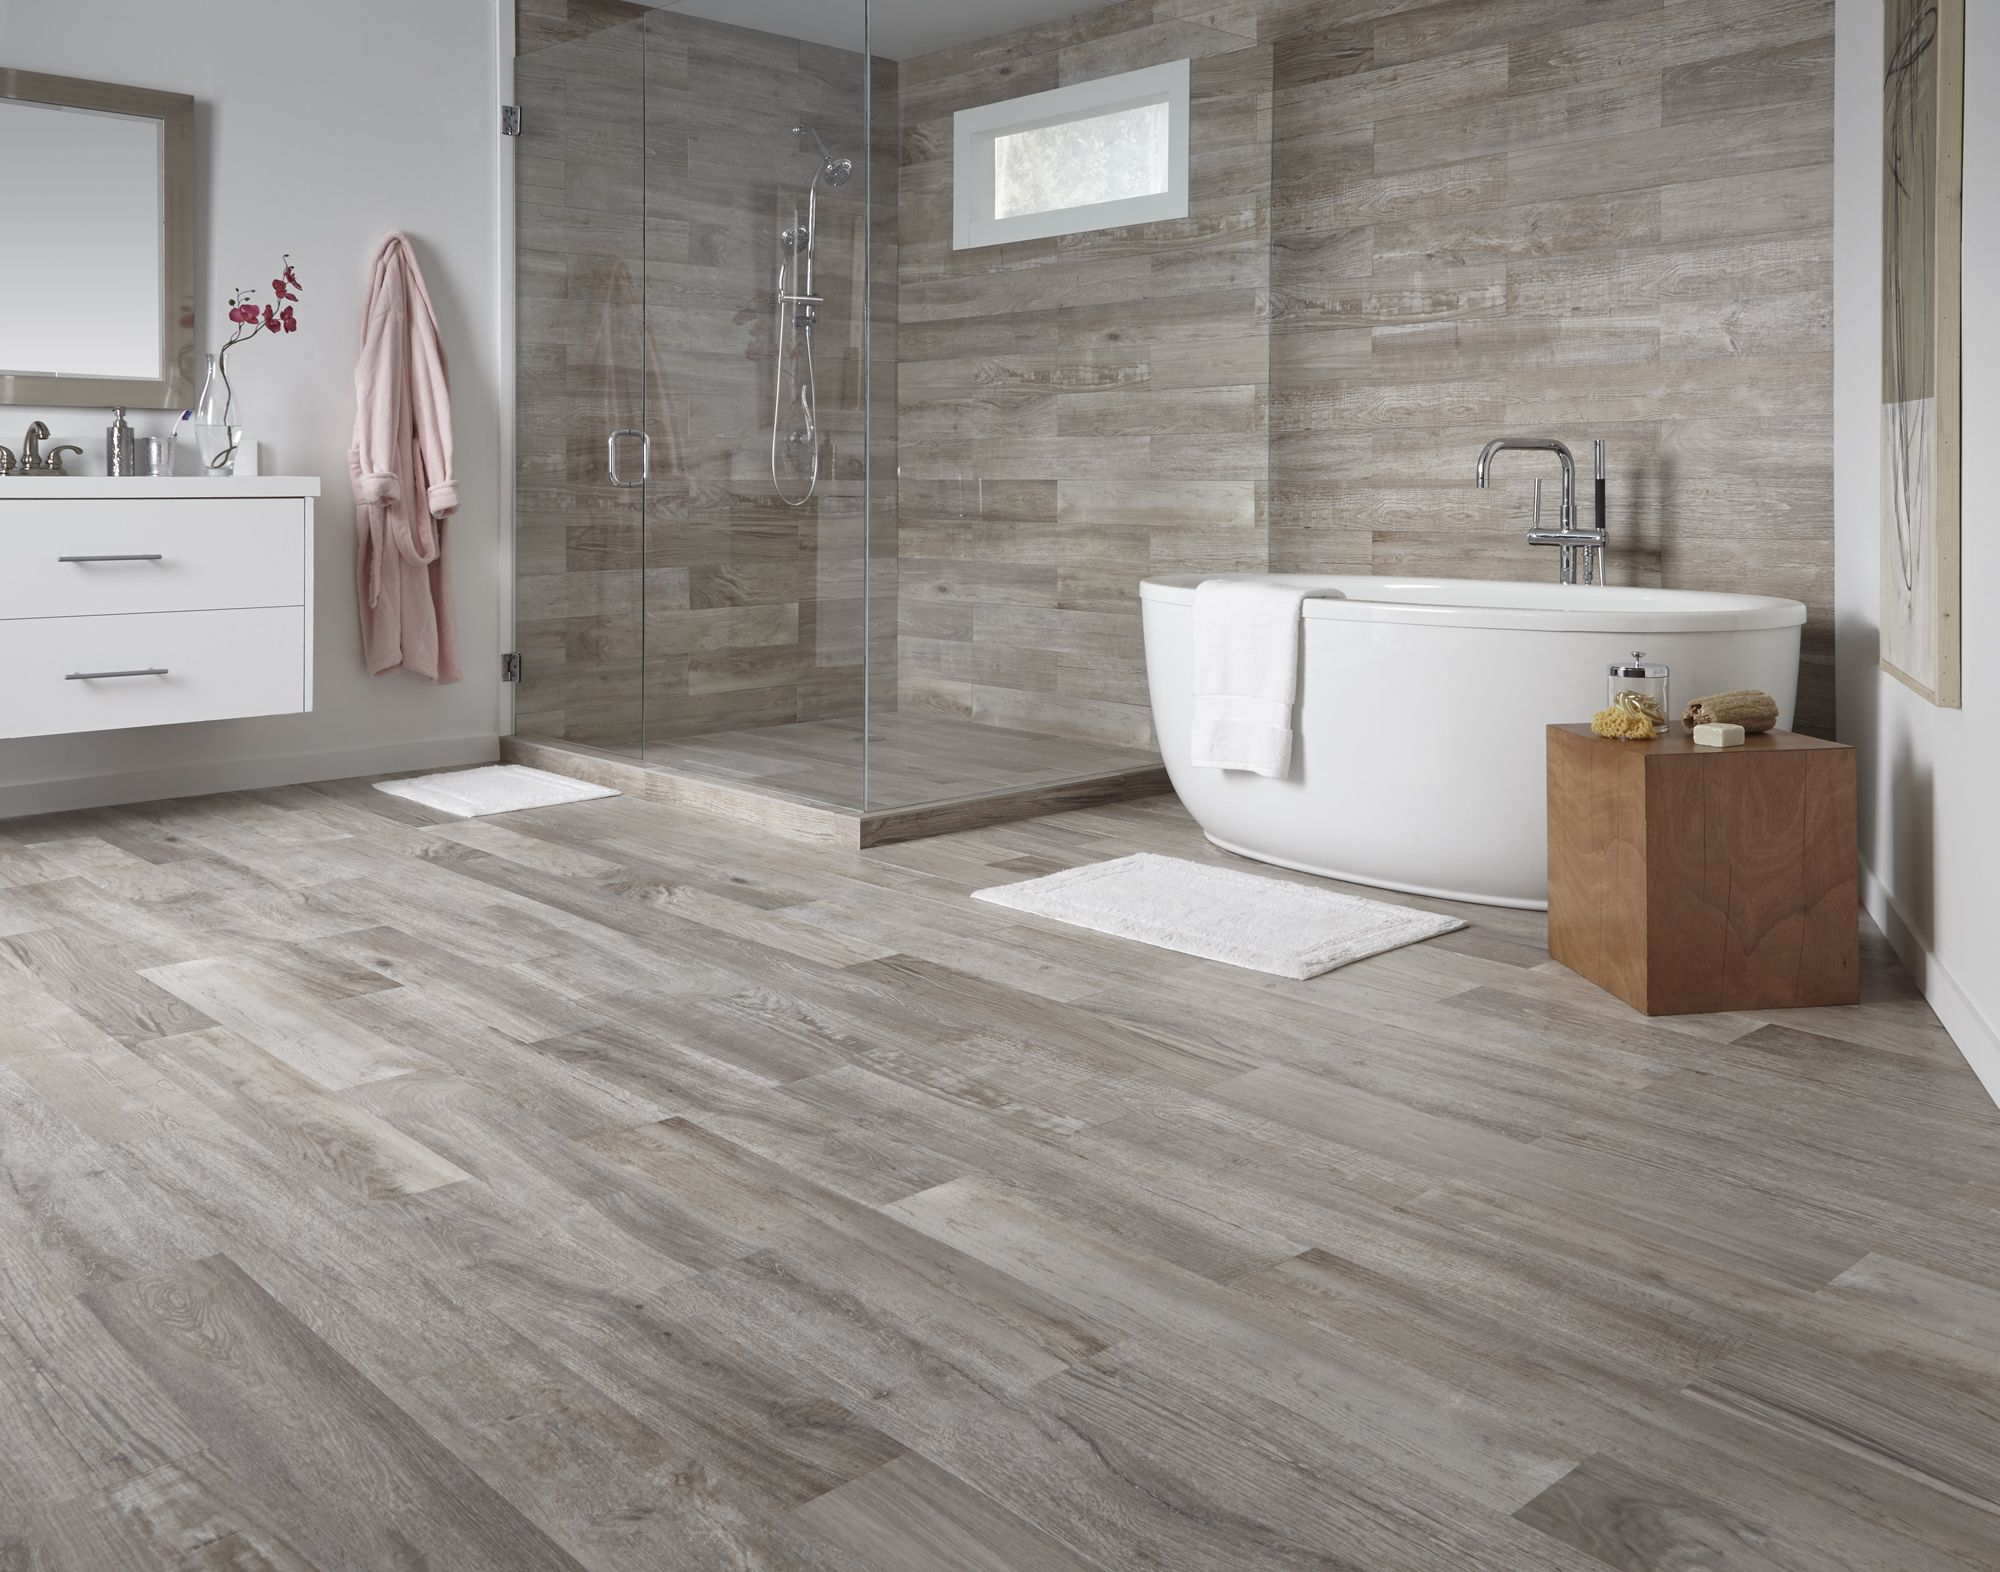 Waterproof floor tile